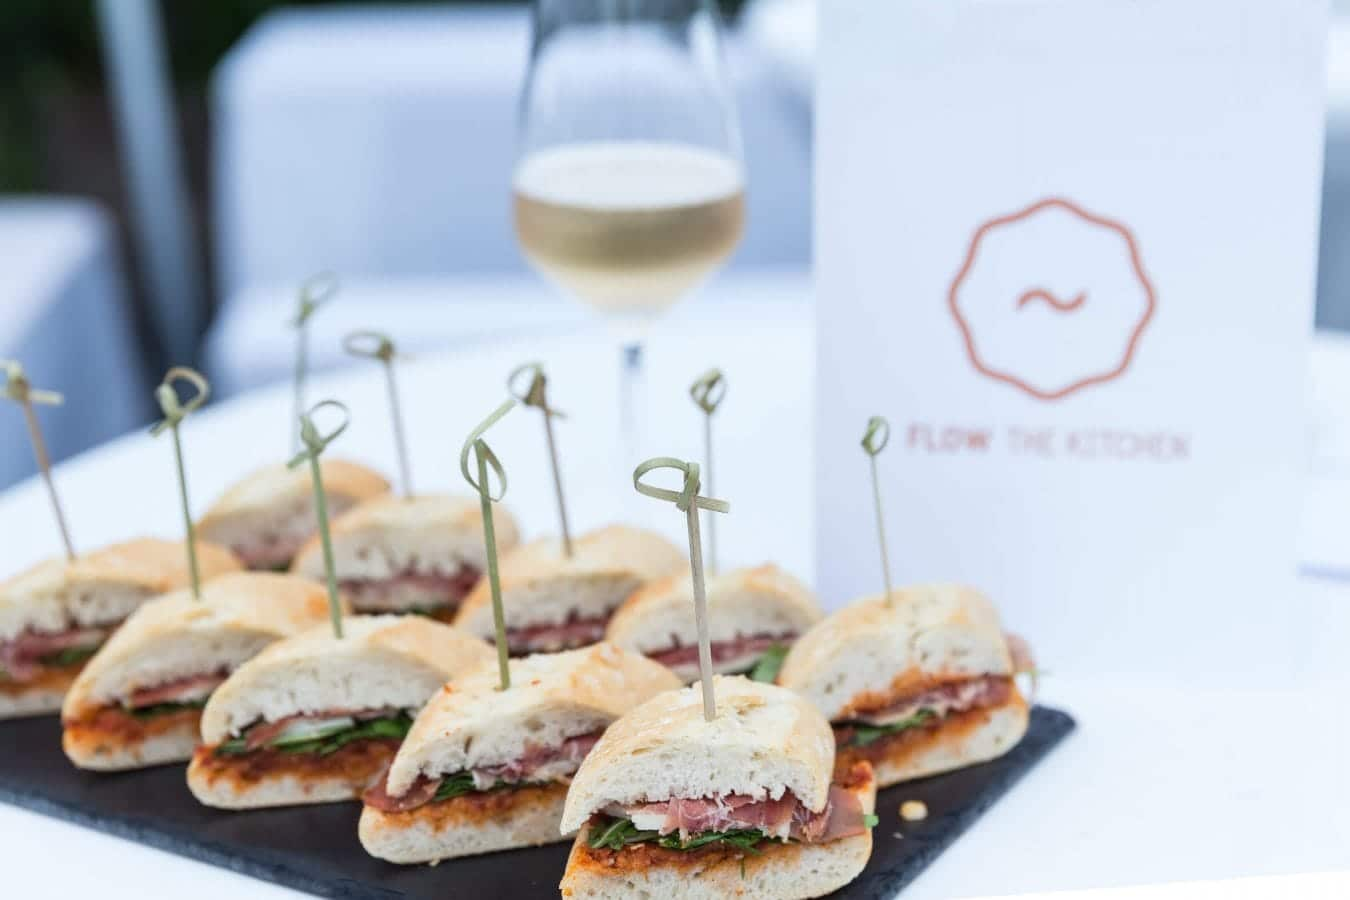 Catering Beispiele: Sandwiches - FLOW THE KITCHEN · Caterer Frankfurt/M & Rhein-Main